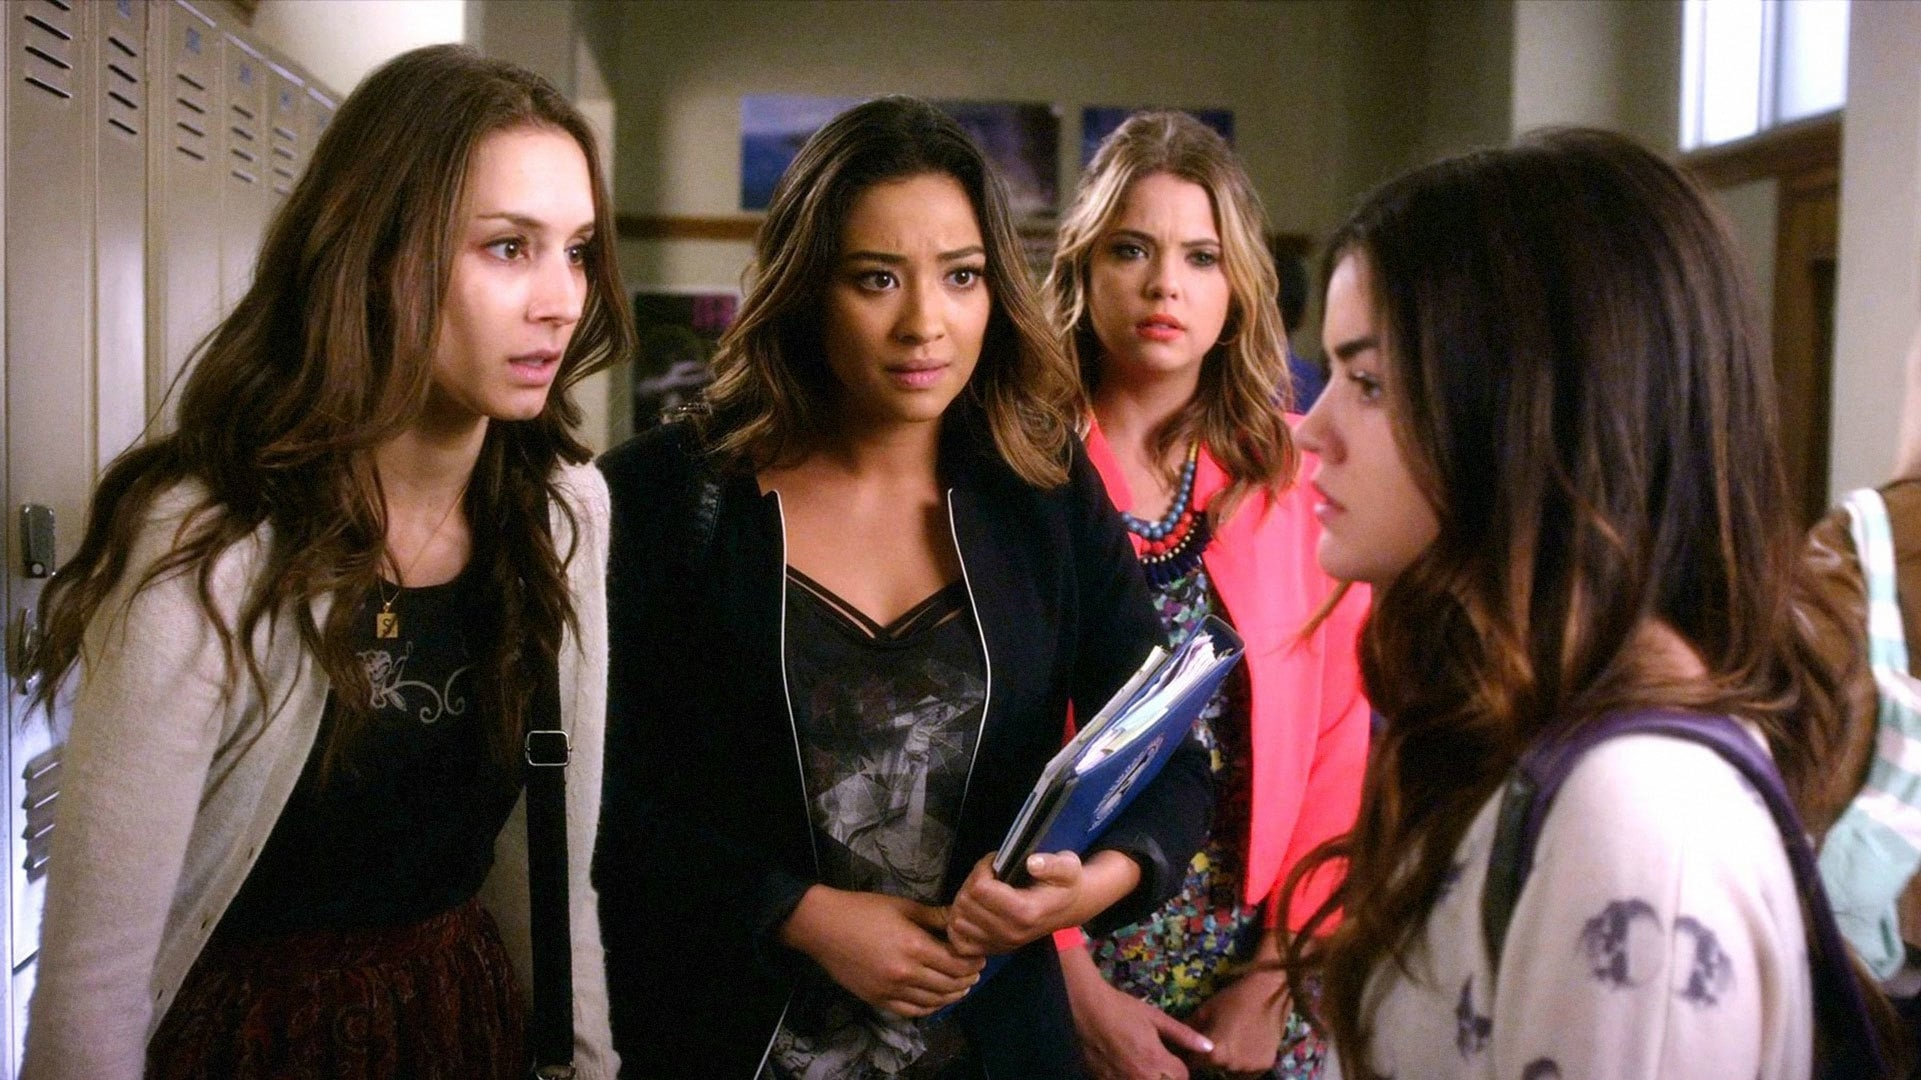 pretty little liars 2 essay Pretty little liars is an american teen drama mystery thriller television series developed by i marlene king and is loosely based on the novel series of the.